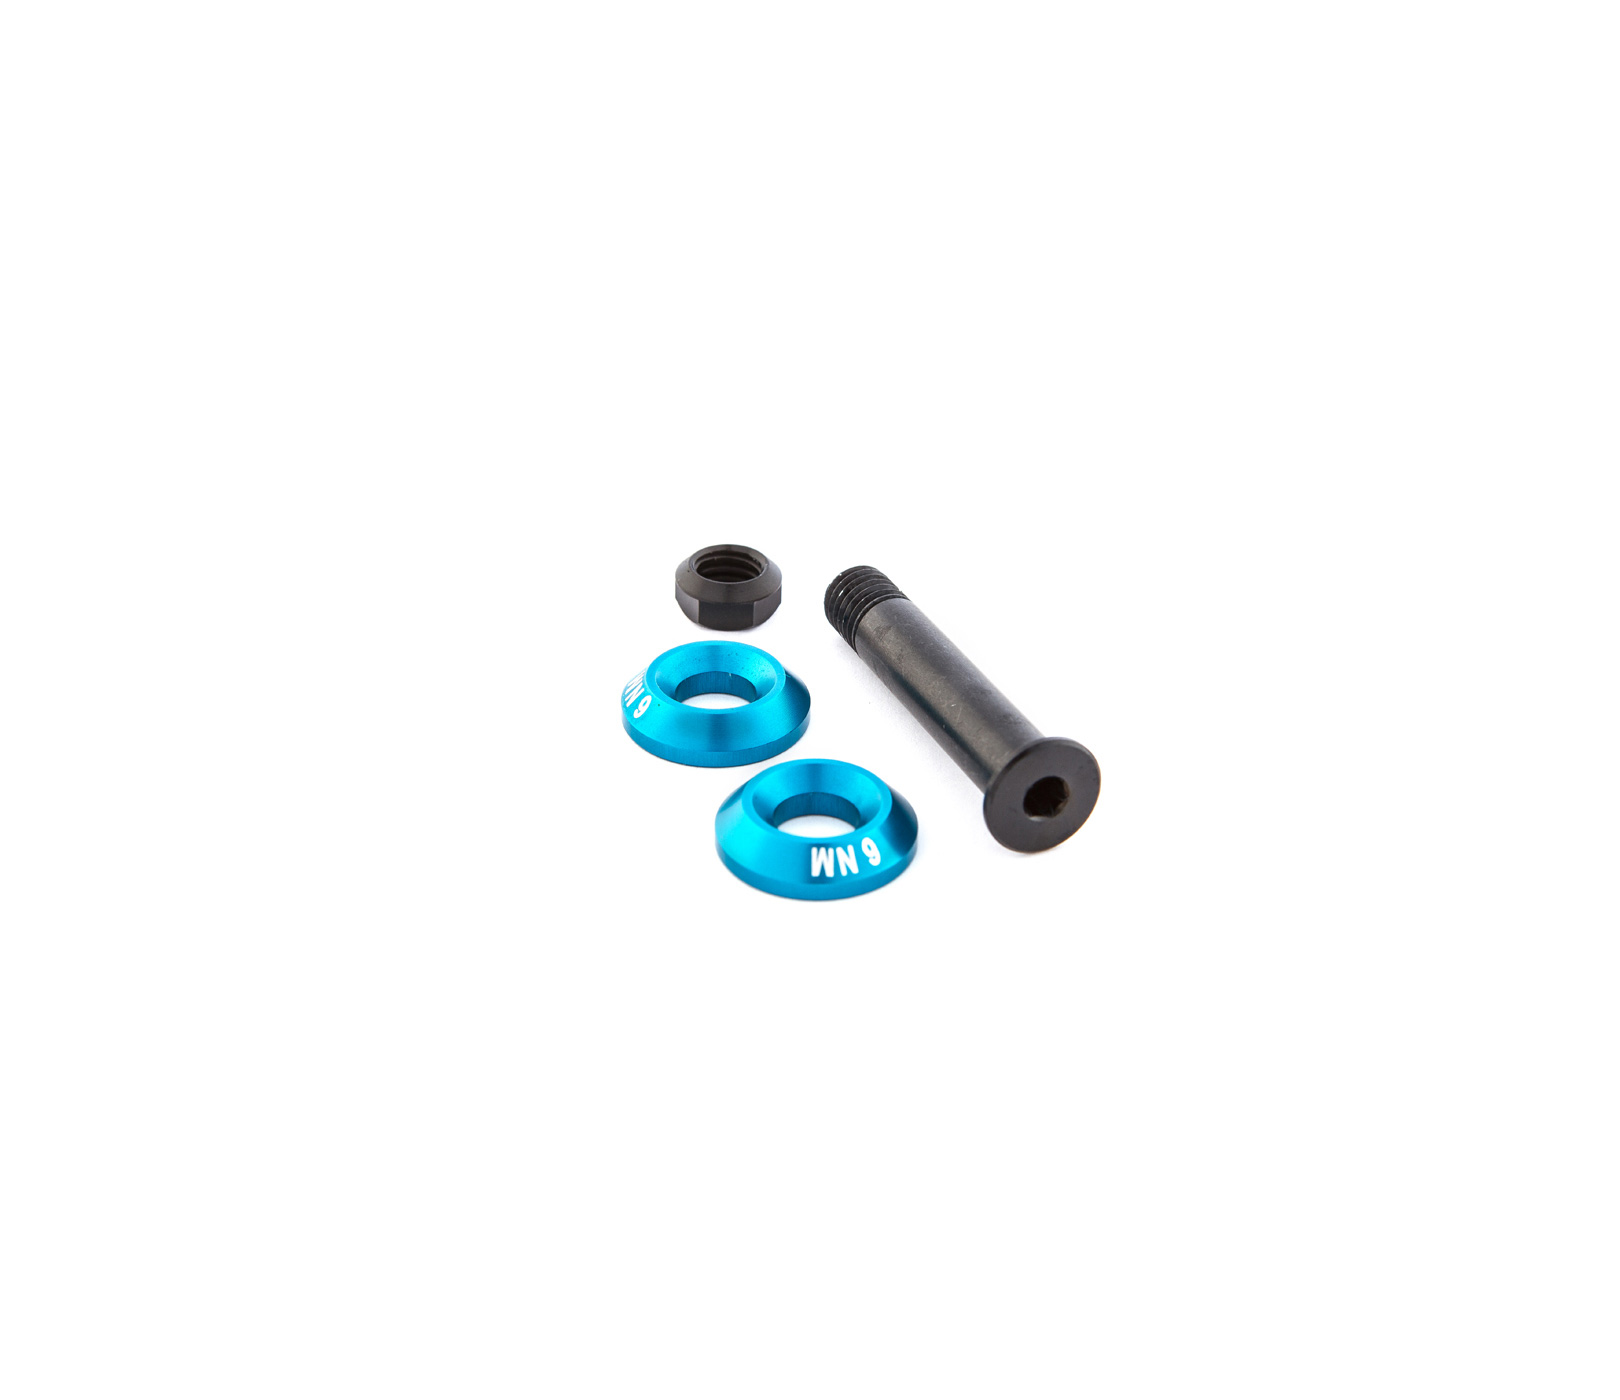 BLUE PIVOT REBUILD KIT NO. 8 FOR RALLON MODELS